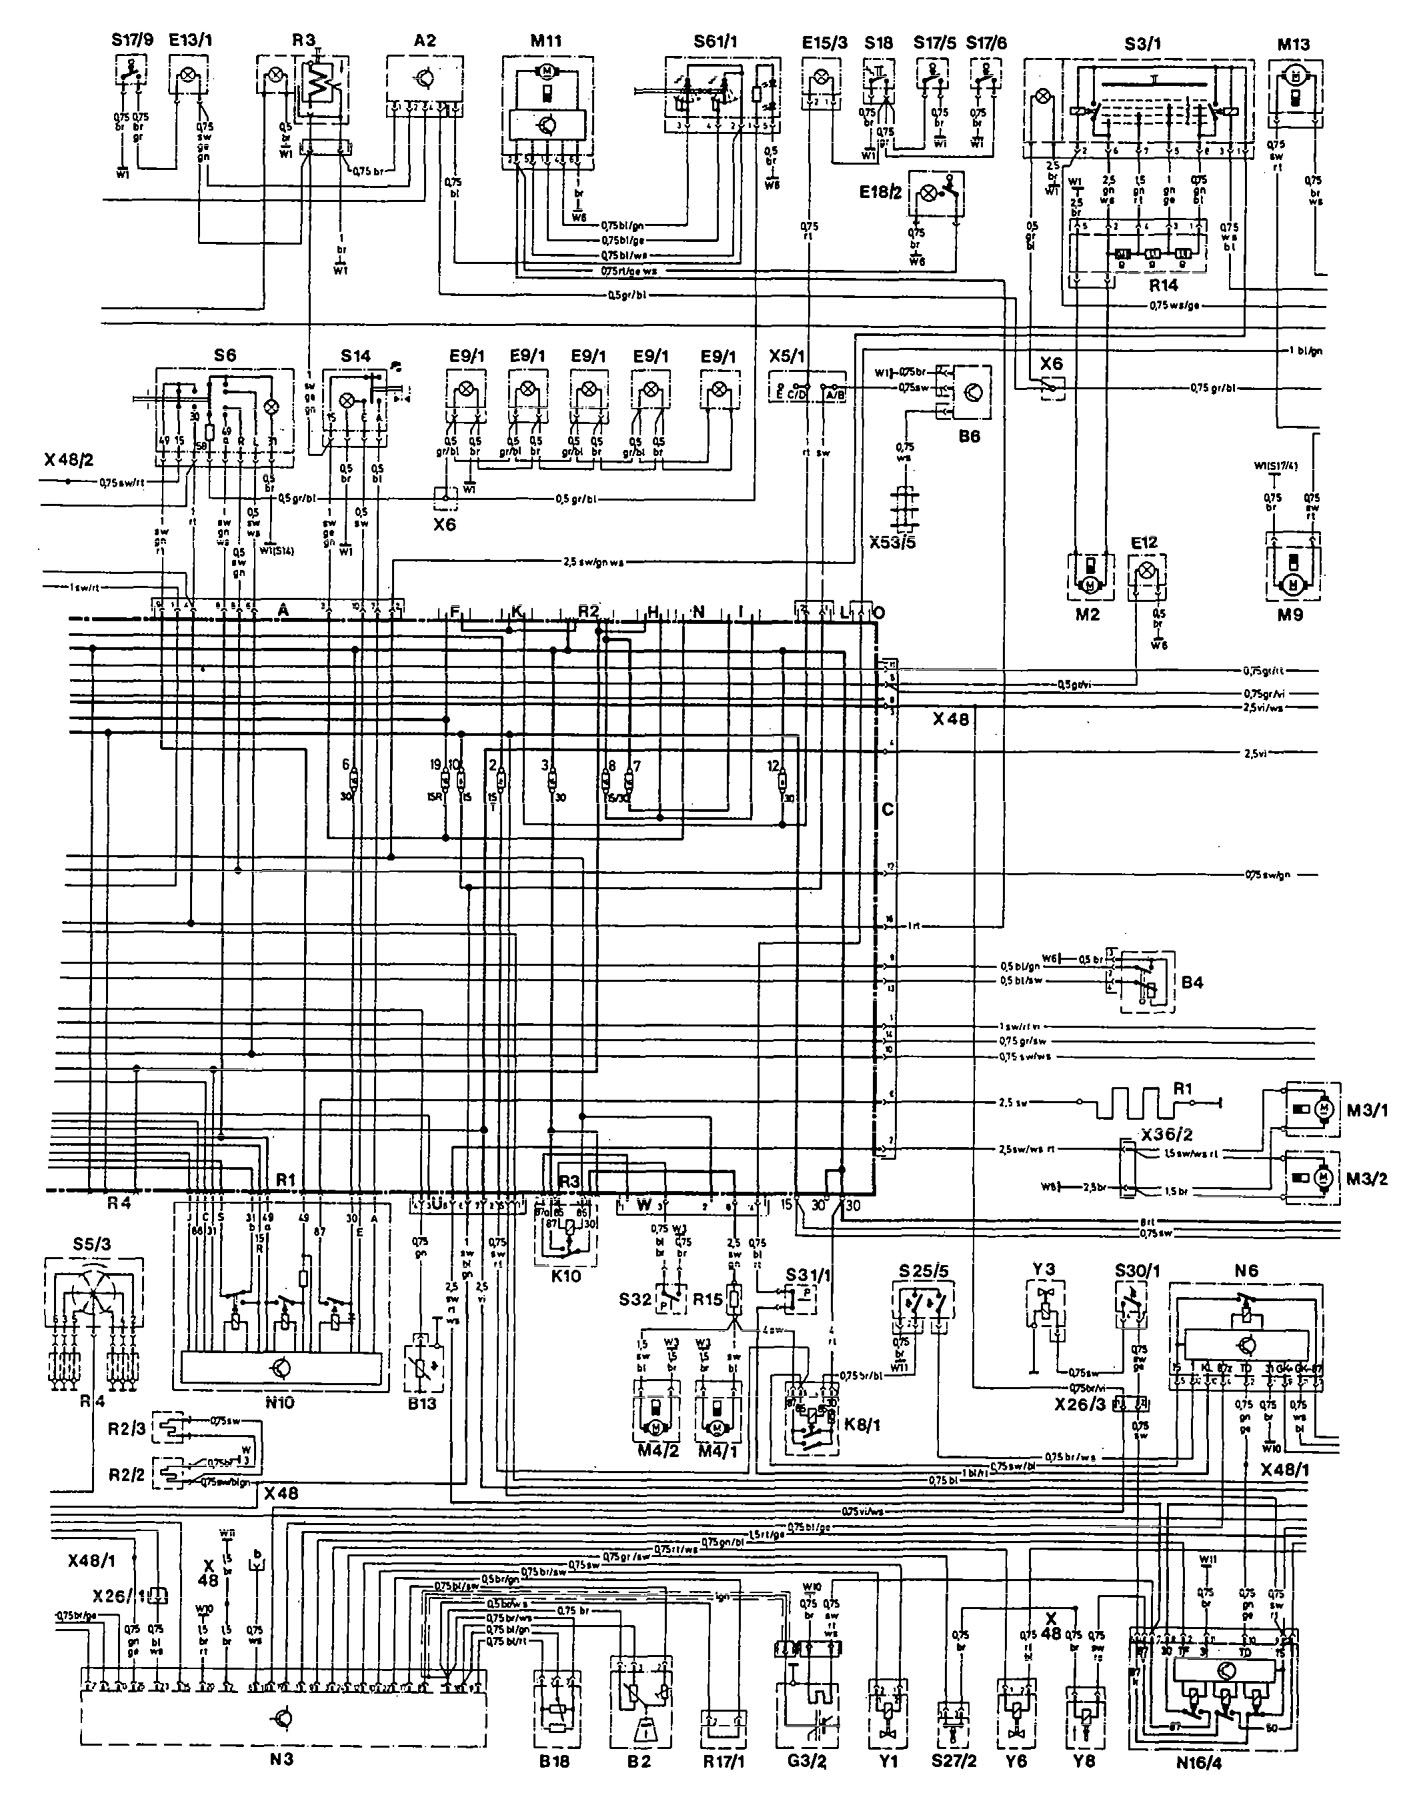 hight resolution of mercedes benz actros wiring diagram wiring library mercedes benz actros wiring diagram